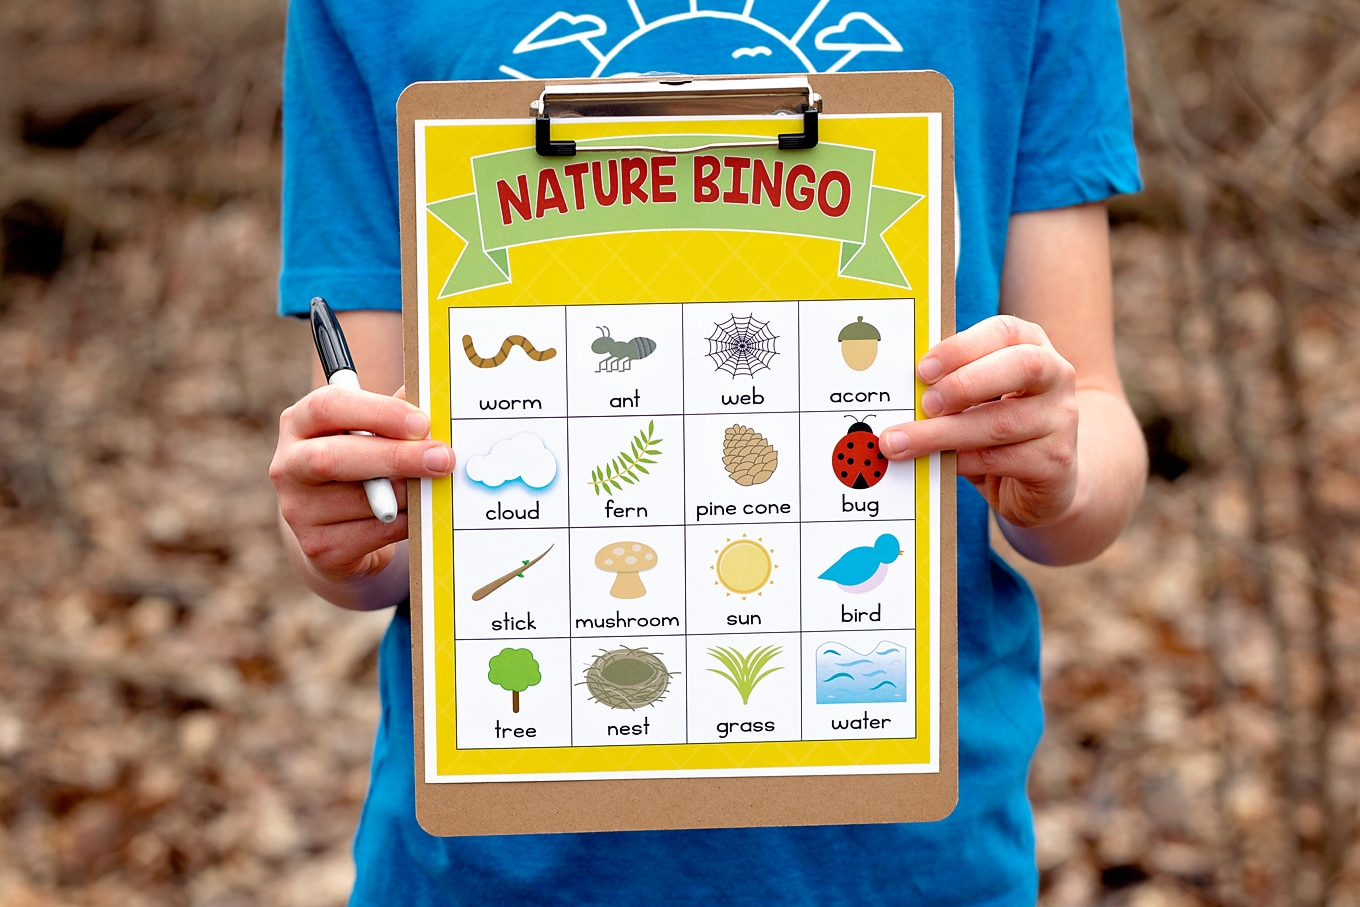 Boy Holding Yellow Nature BINGO Card